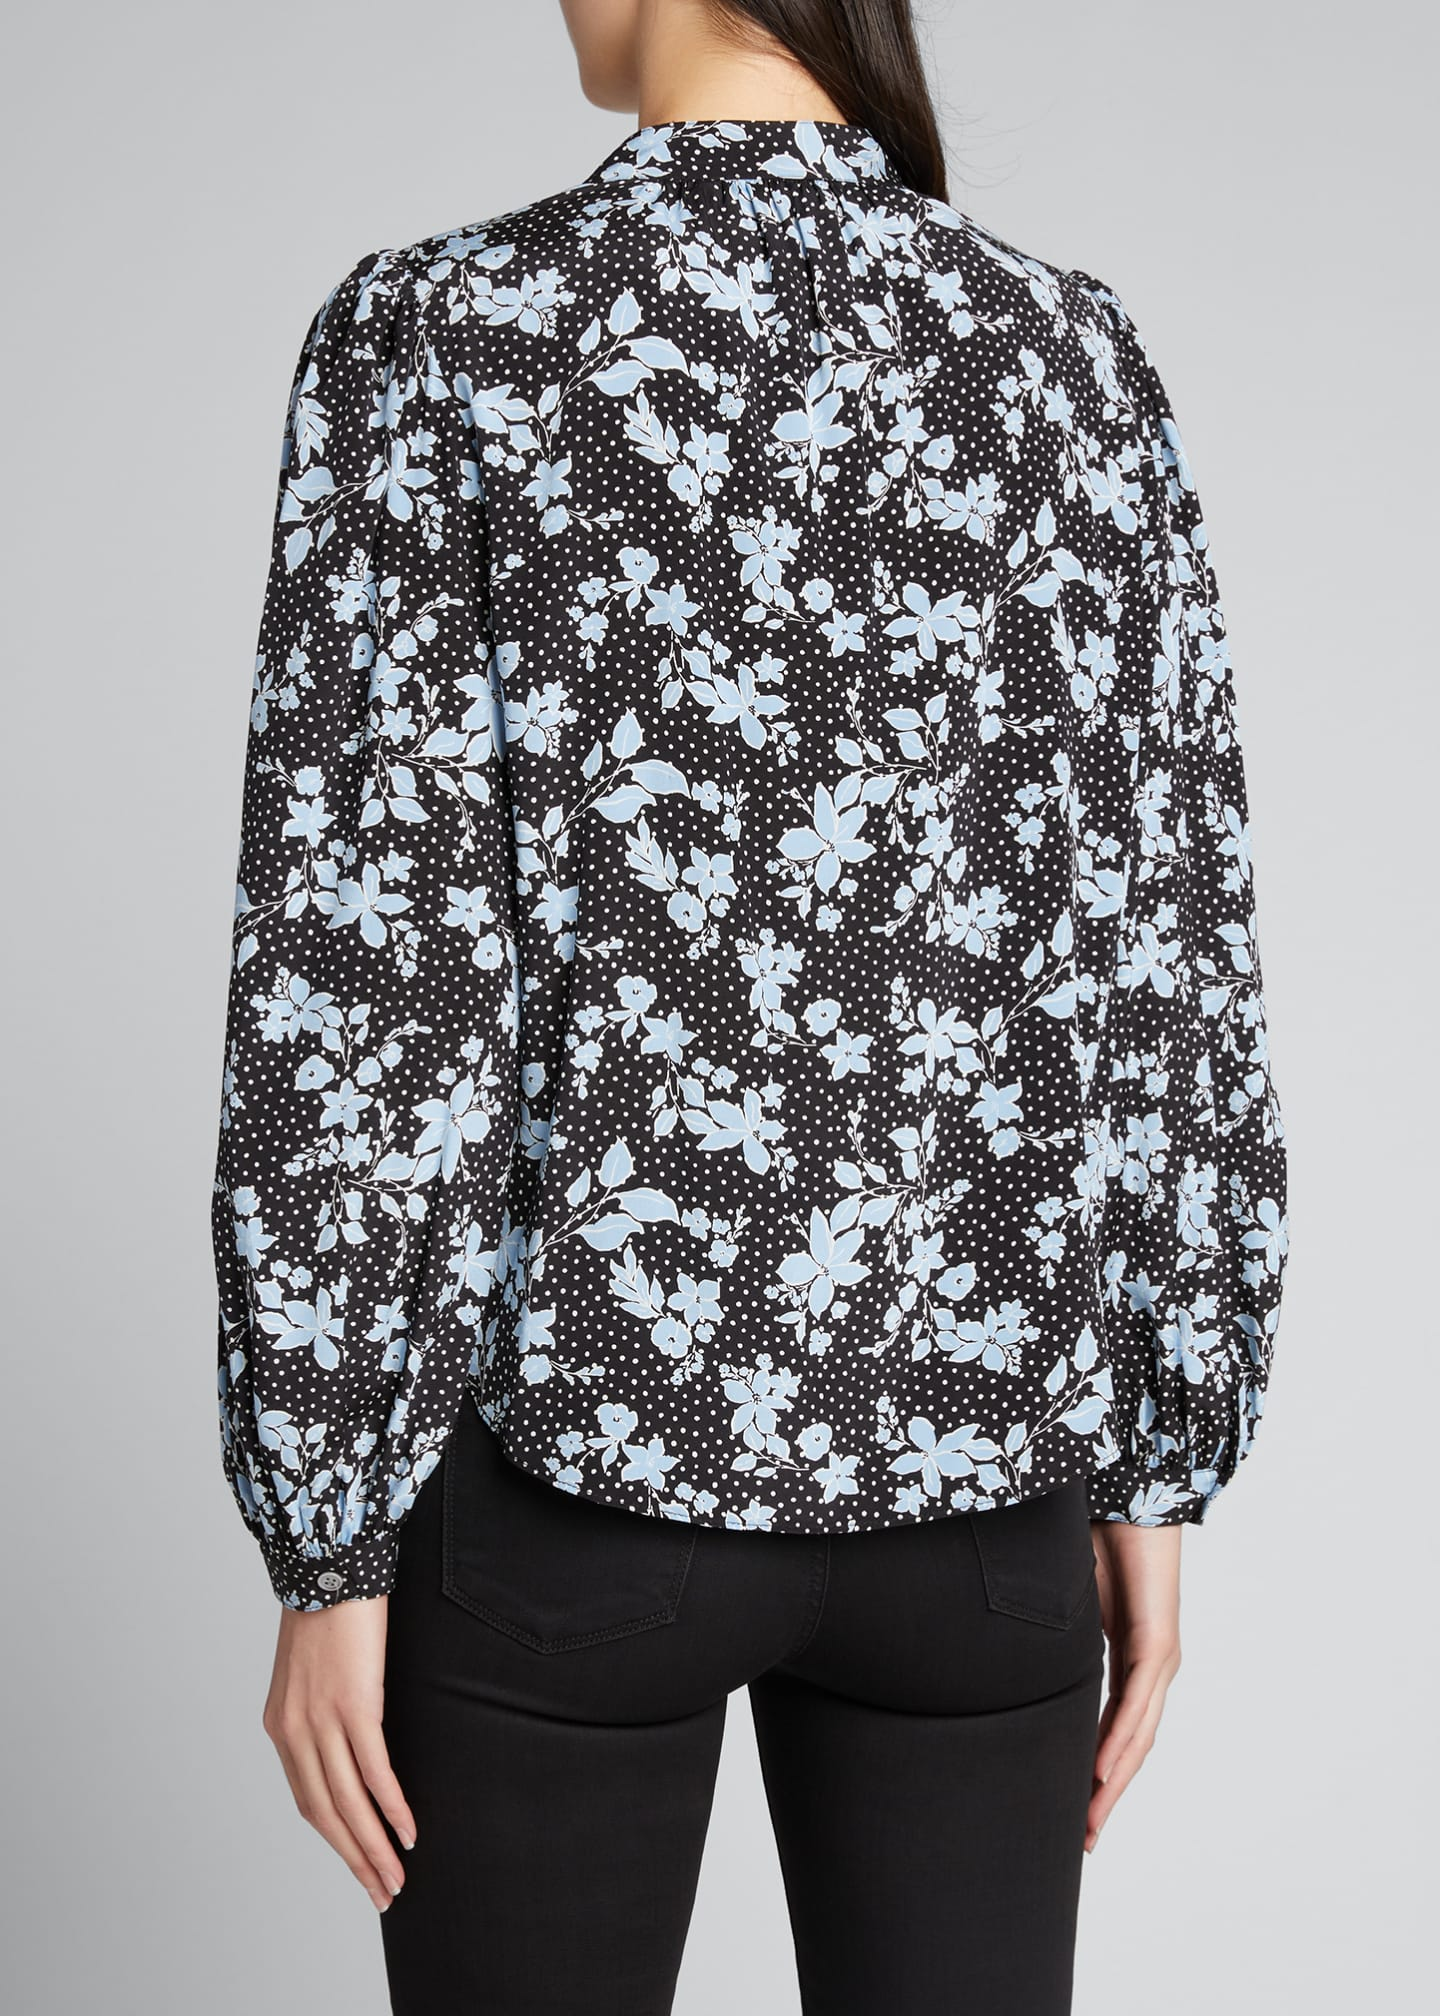 Image 2 of 5: Ashlynn Dotted Floral Print Blouse